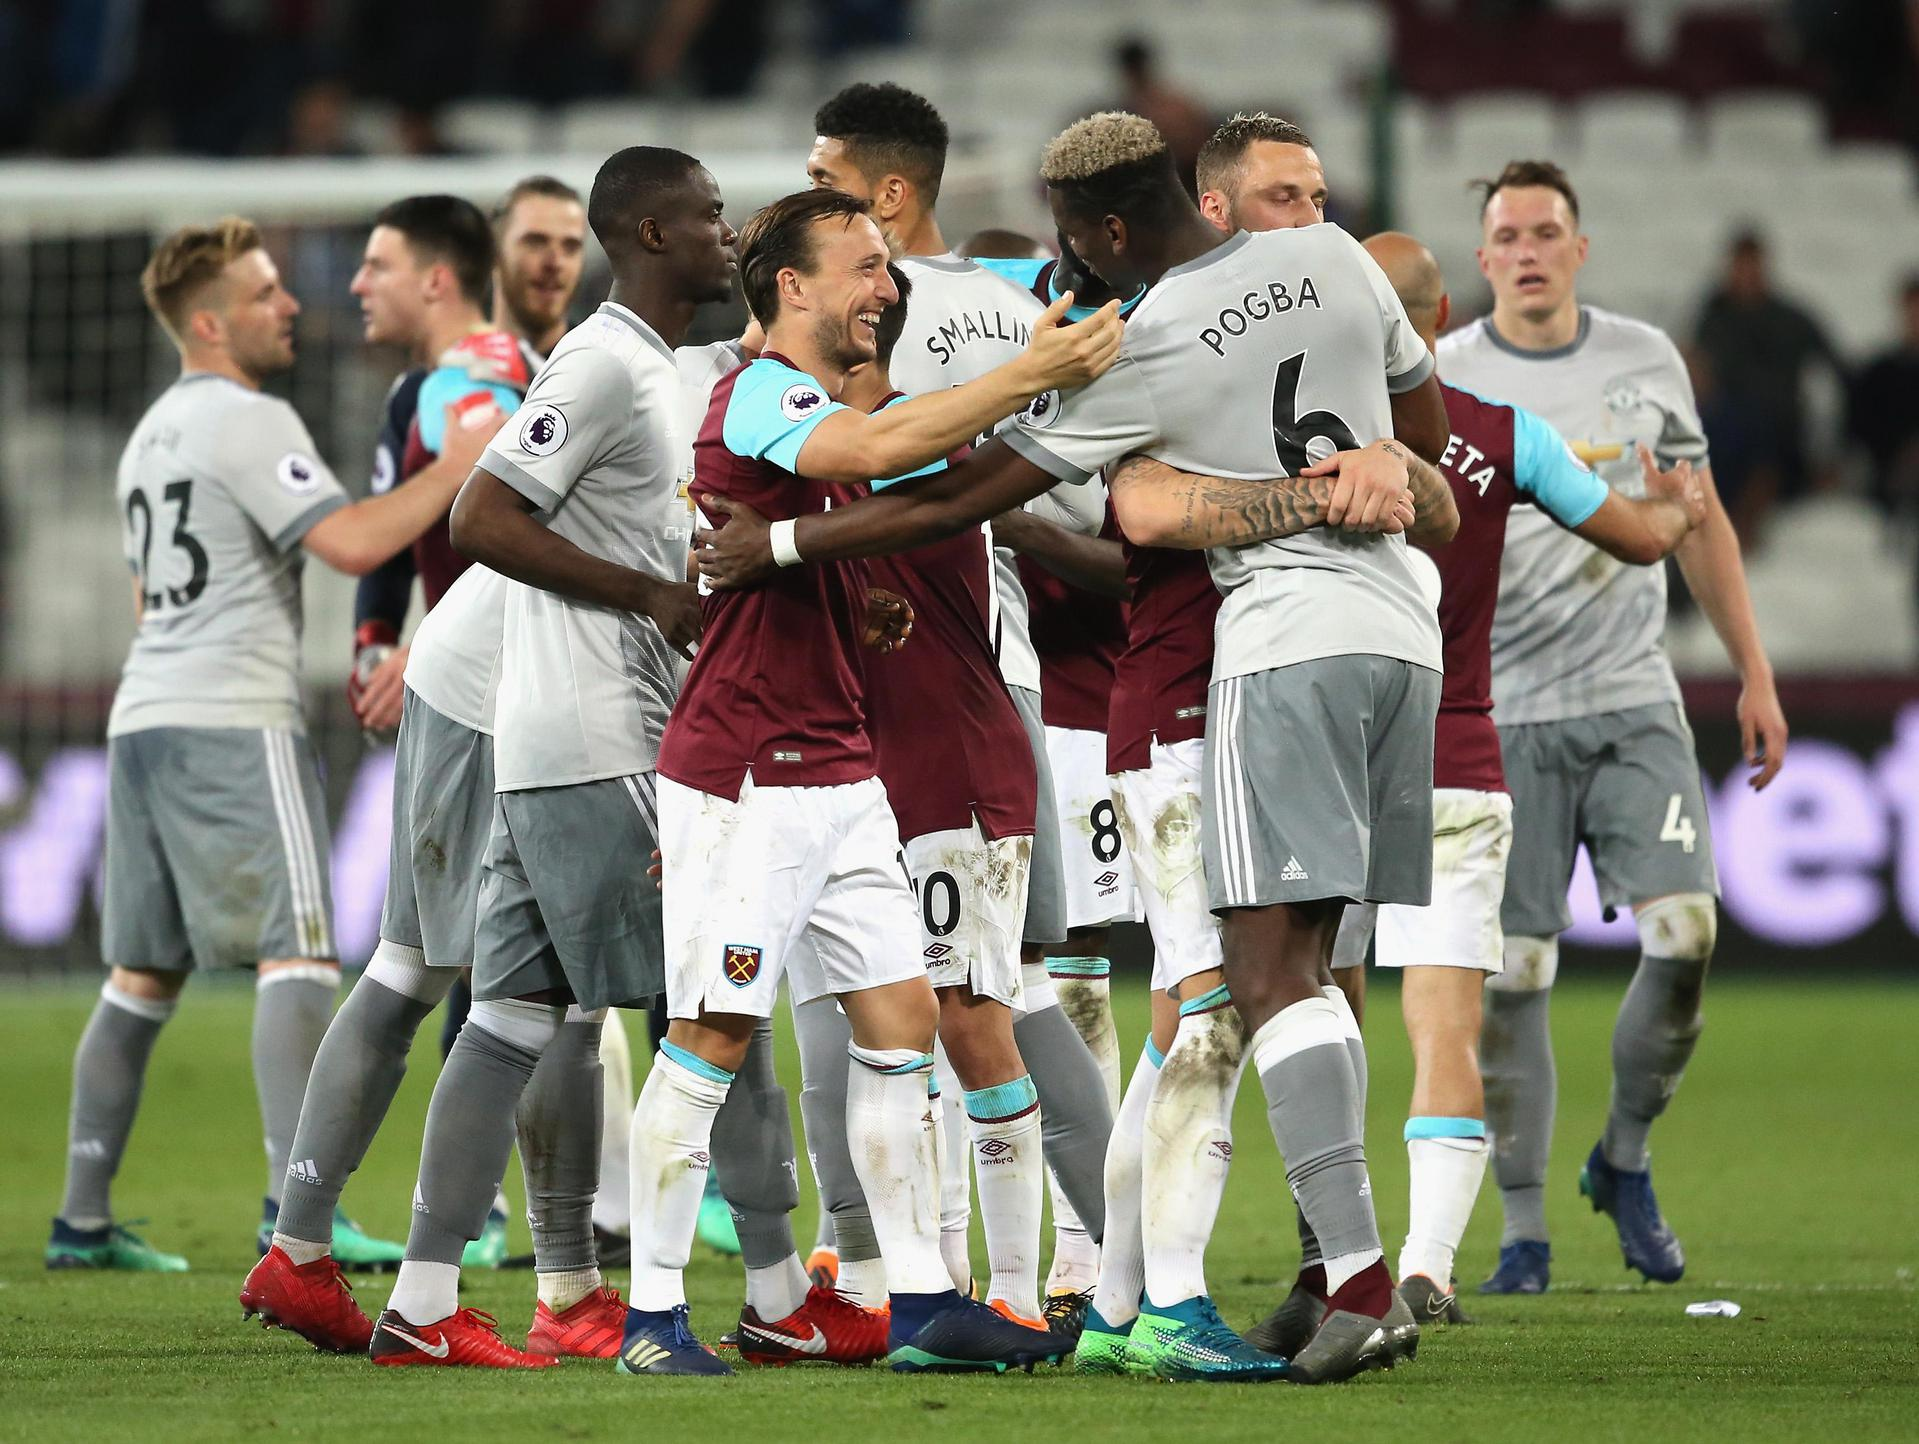 United and West Ham players embrace after the final whistle